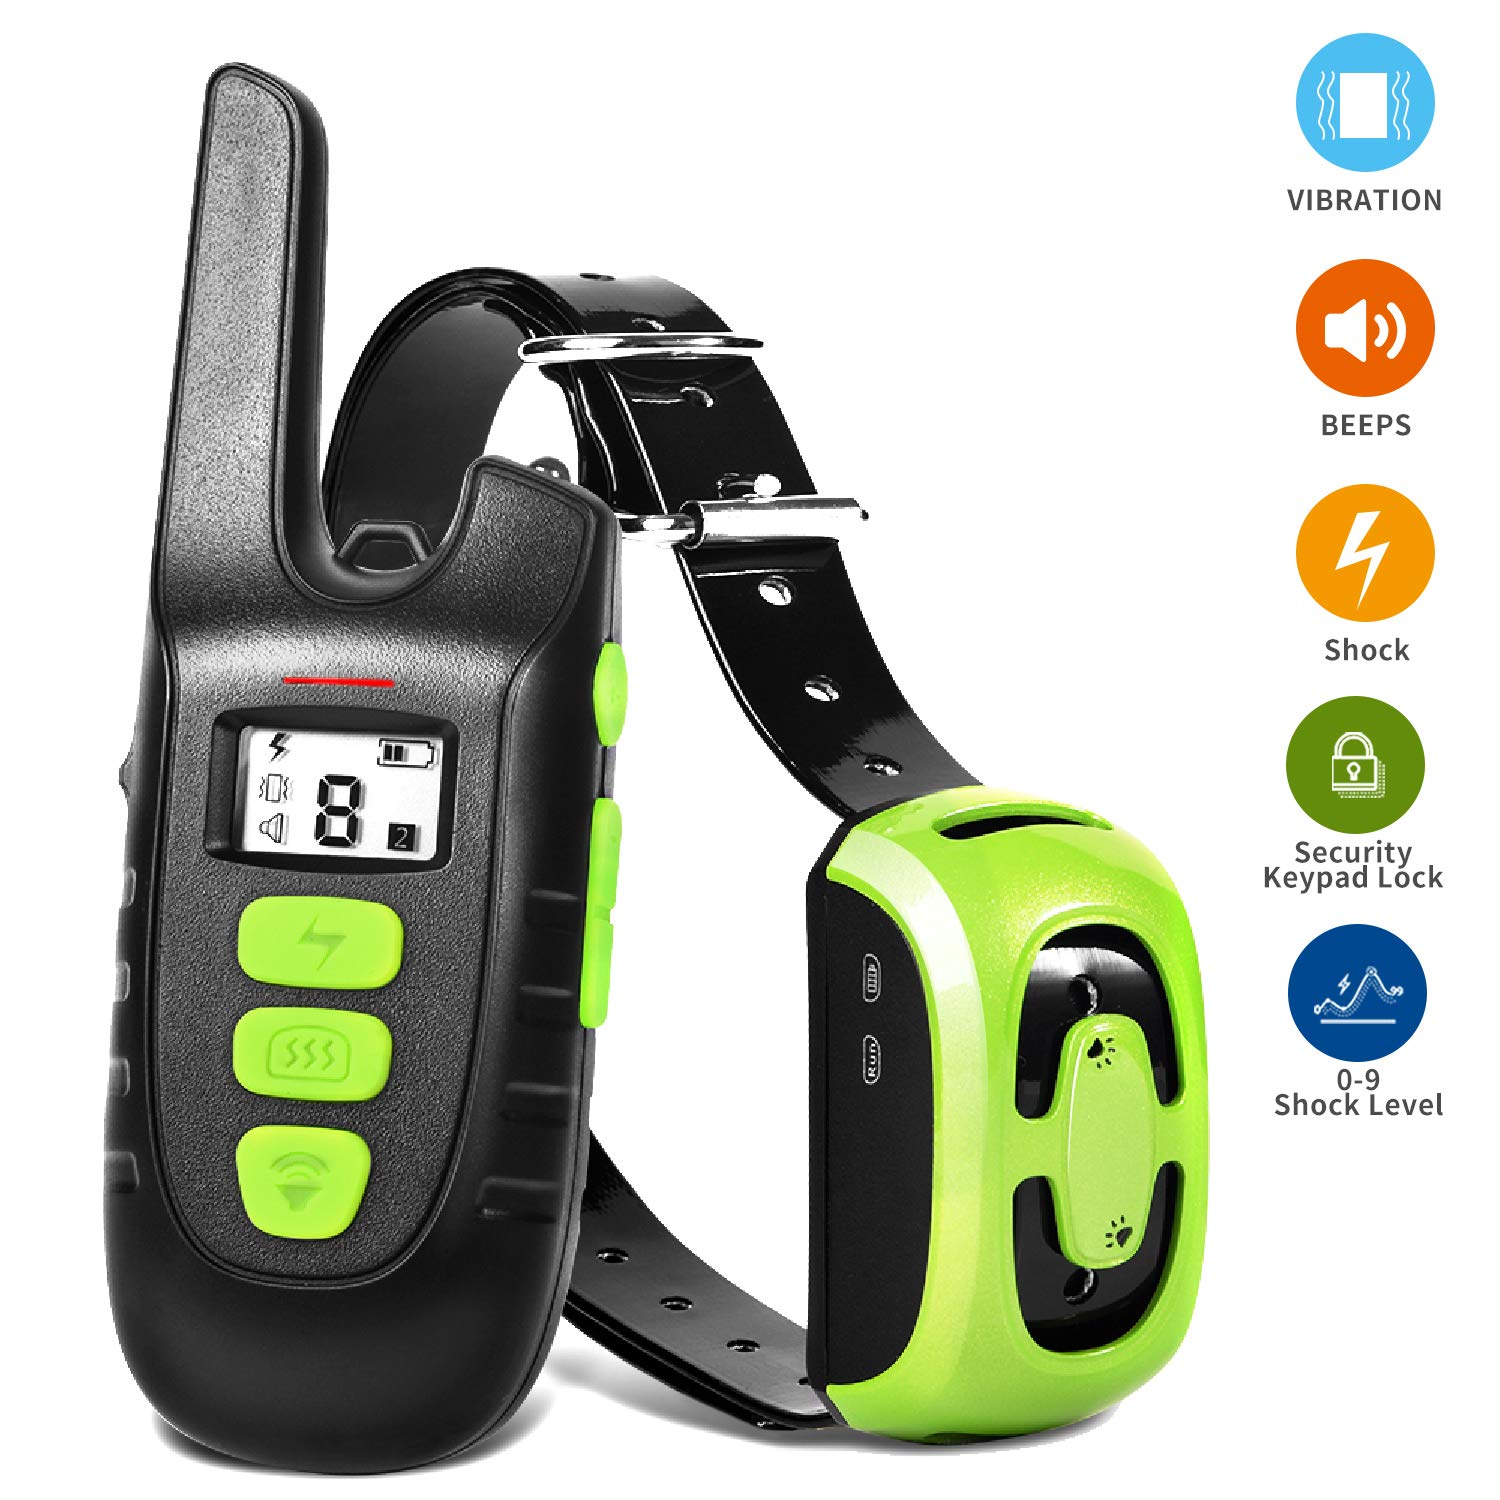 YIDA TECH Shock Collar for Dogs, Rechargeable Dog Shock Collar with Remote Control 1600ft Range, 100% IP67 Waterproof Beep, Shock, Vibrate Modes Dog Training Collar (DTC5)